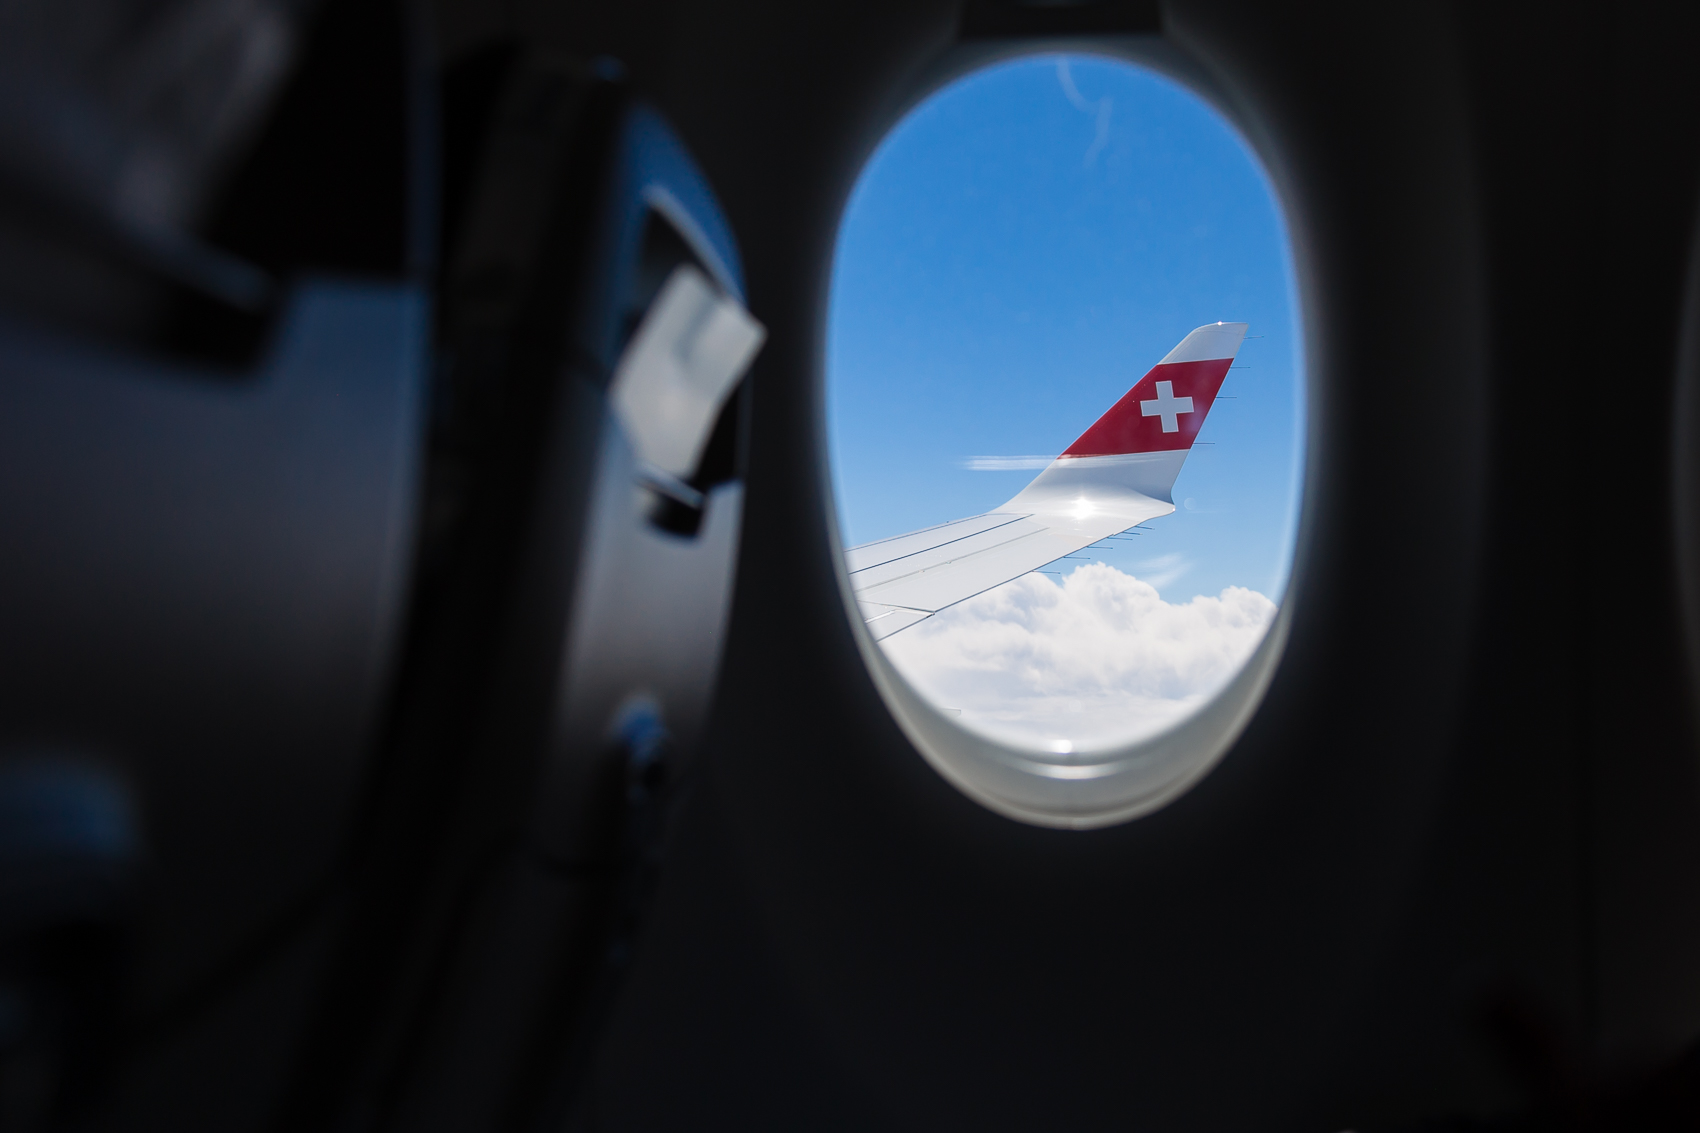 always a good day when we see the Swiss air wing out the airplane window. Going somewhere good.